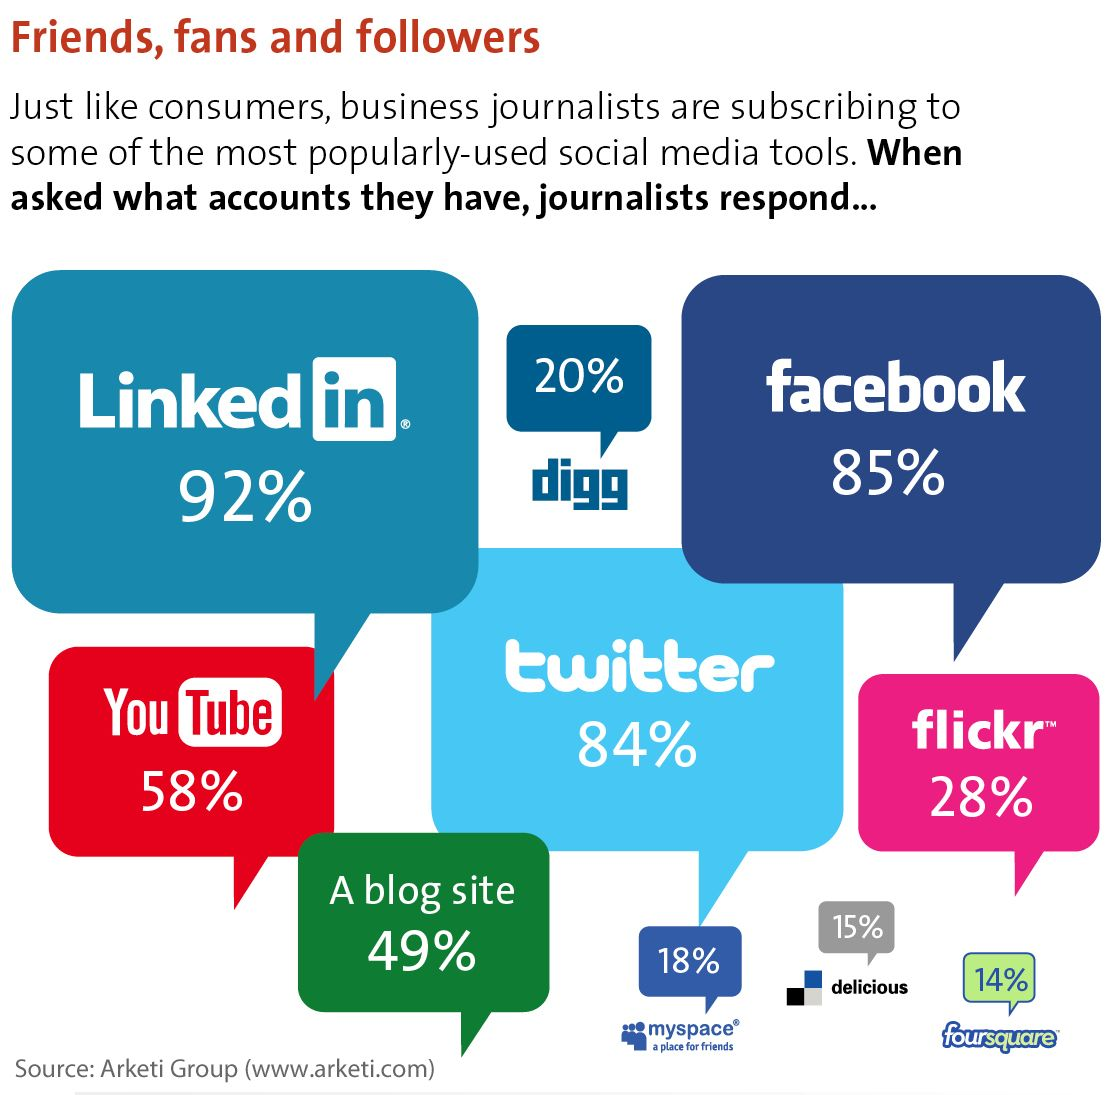 Friends Fans And Followers How Business Journalists Use Social